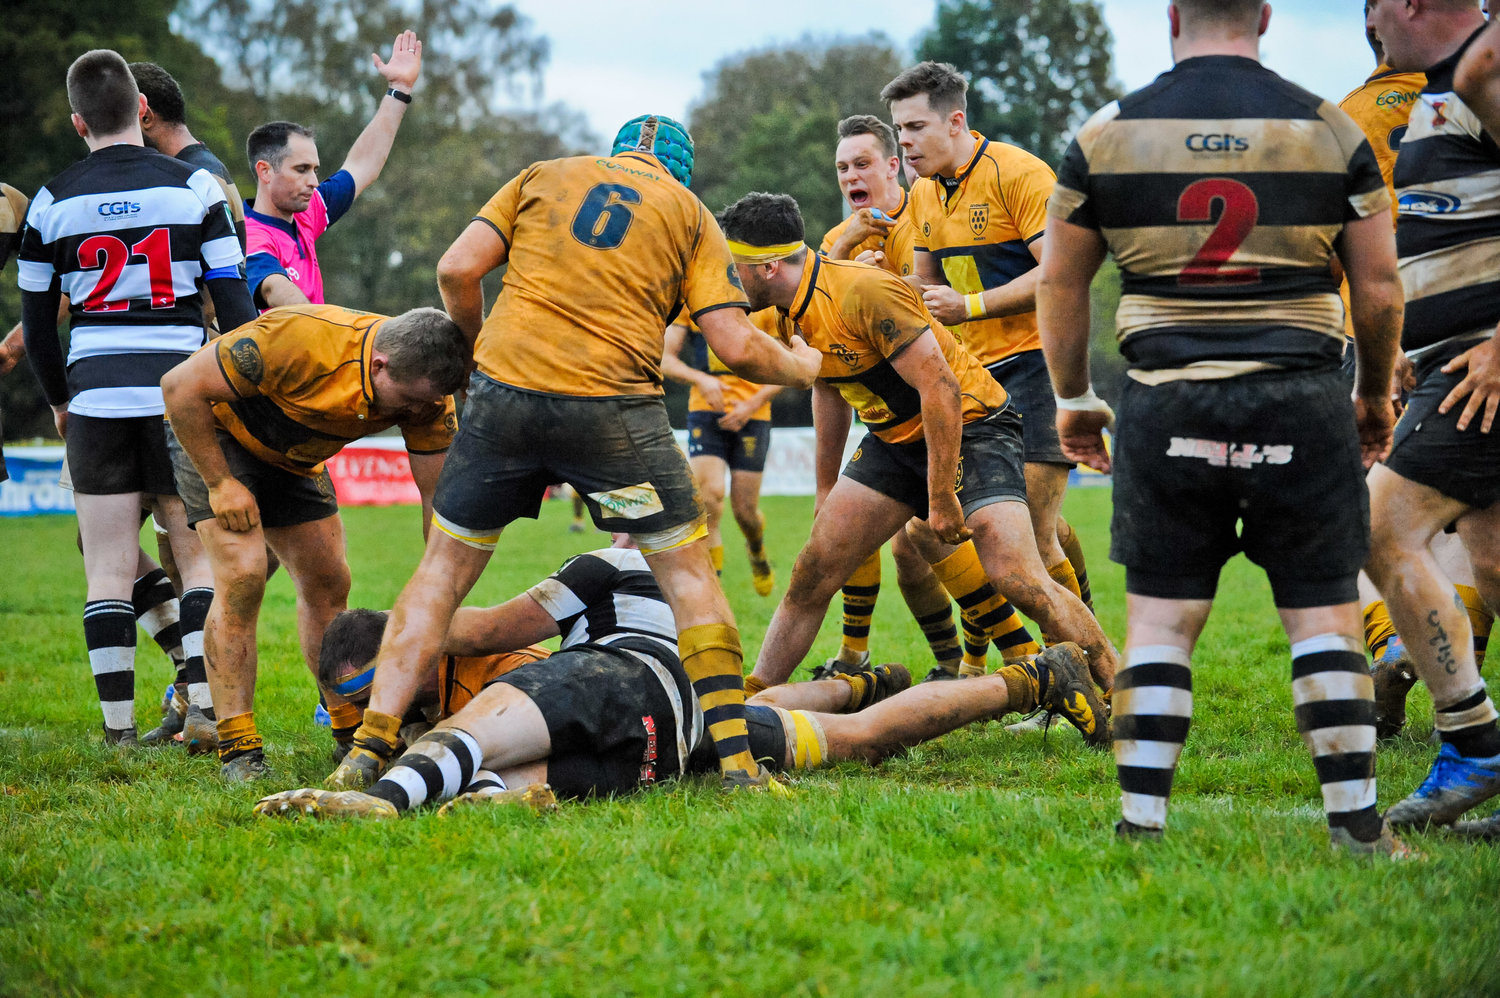 Try! Josh Pettet secures the bonus point try for Oaks. Photo Credit: David Purday